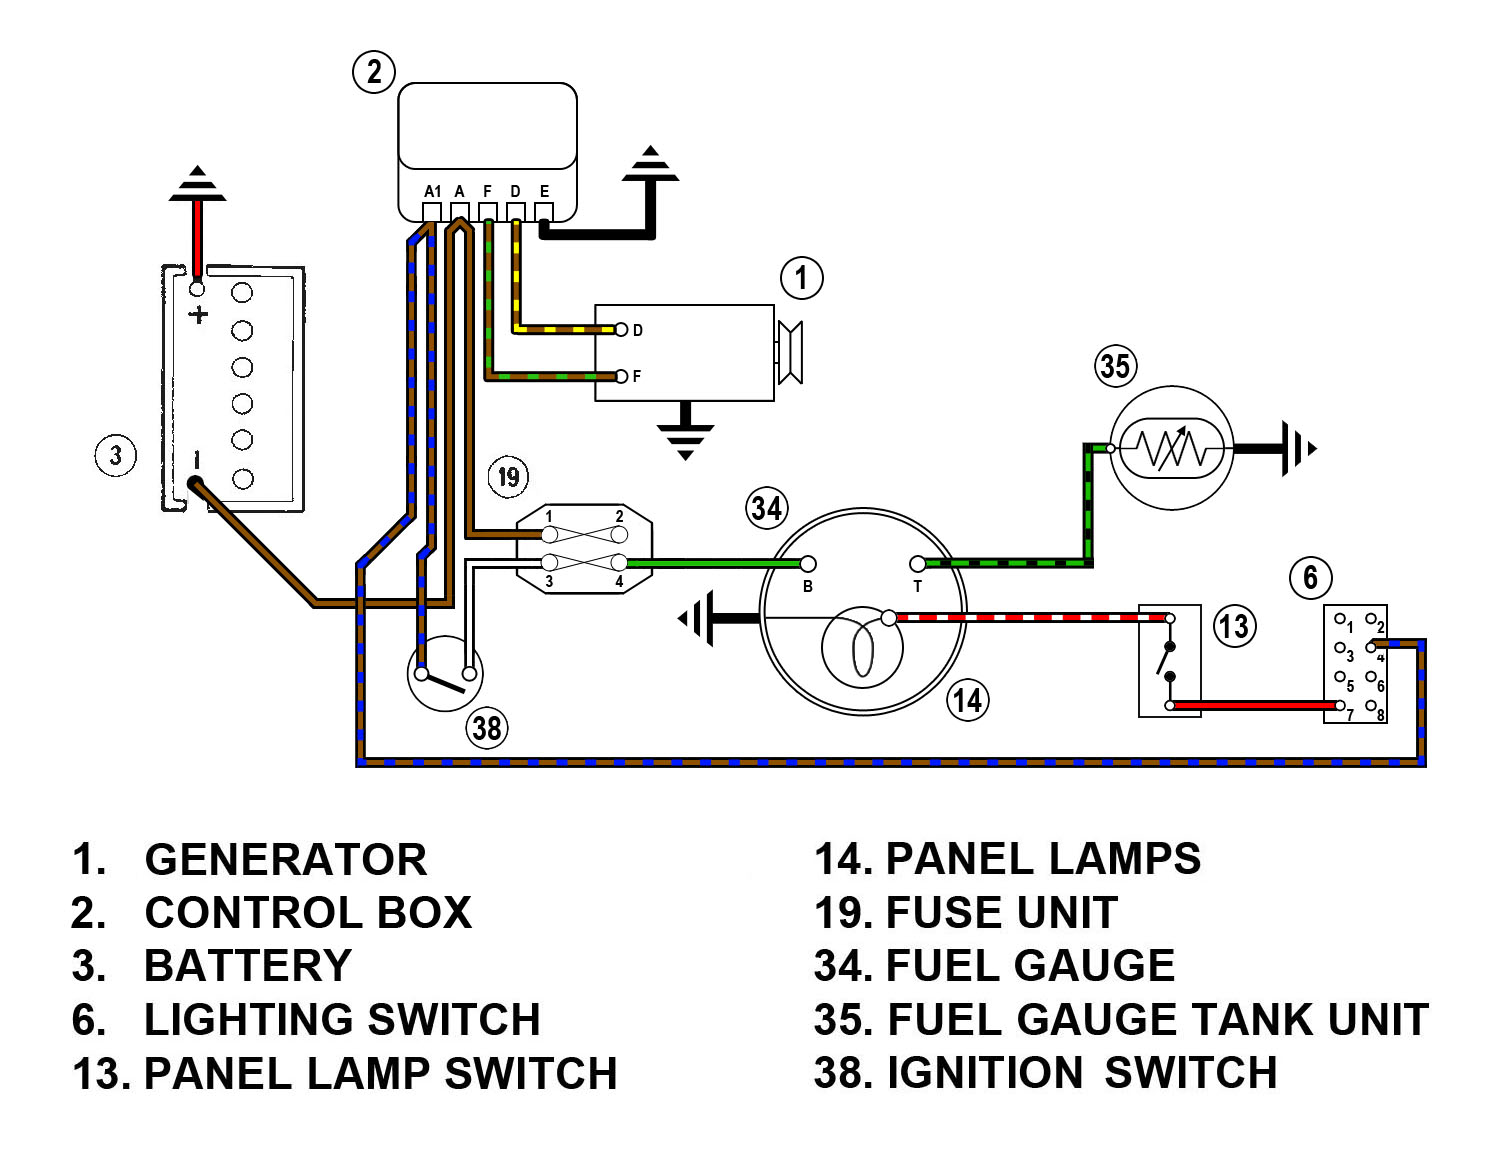 hight resolution of 1979 f150 fuel gauge wiring diagram wiring diagram for you1979 ford f150 fuel gauge wiring diagram